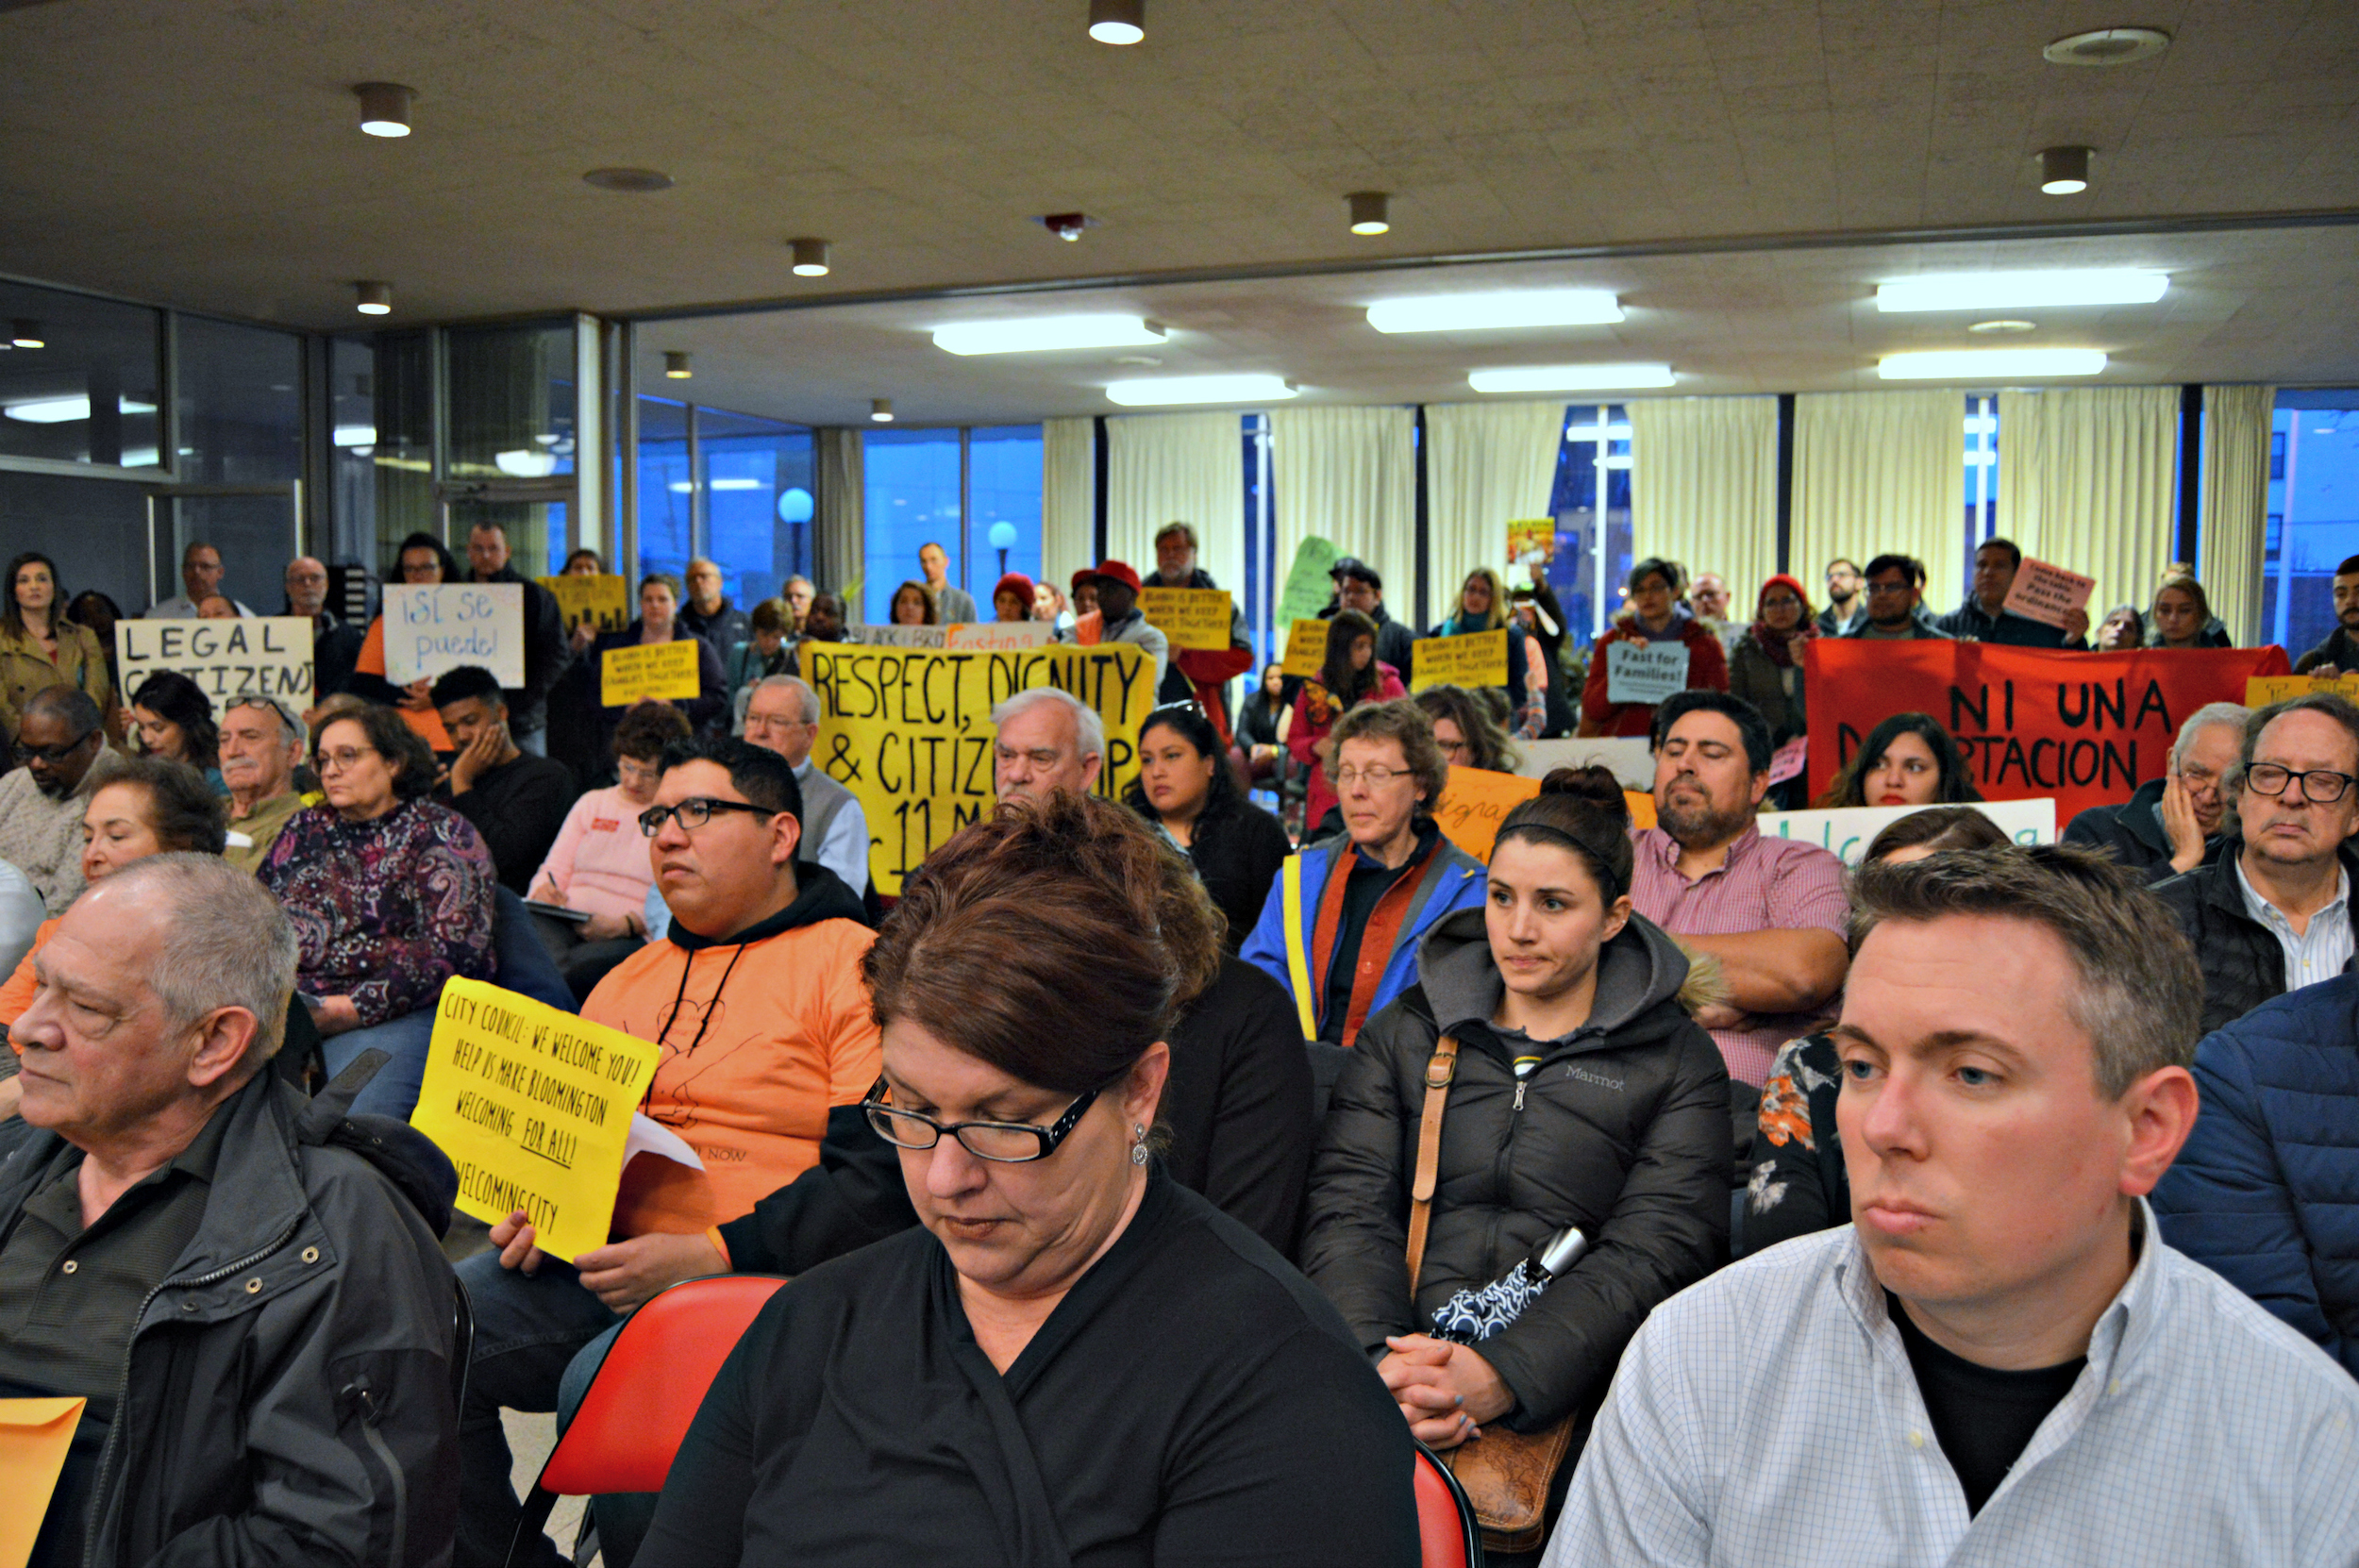 Members of the Keep Families Together coalition staged a walkout at Monday night's Council meeting in protest of council members' inaction on a welcoming city ordinance. (Image credit: Breanna Grow)